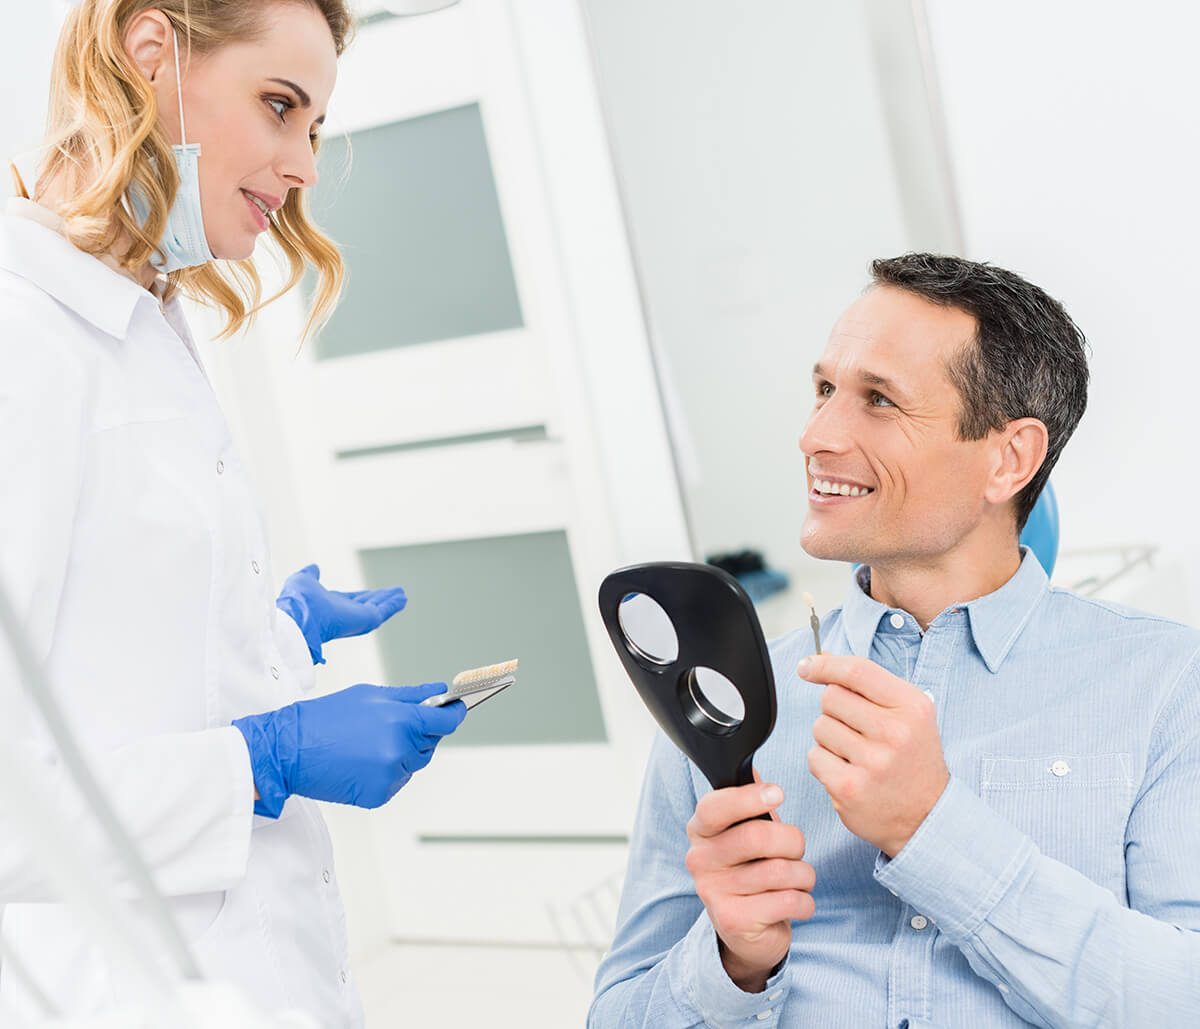 Scottsdale, AZ dentist describes the dental implant procedure to replace a missing tooth